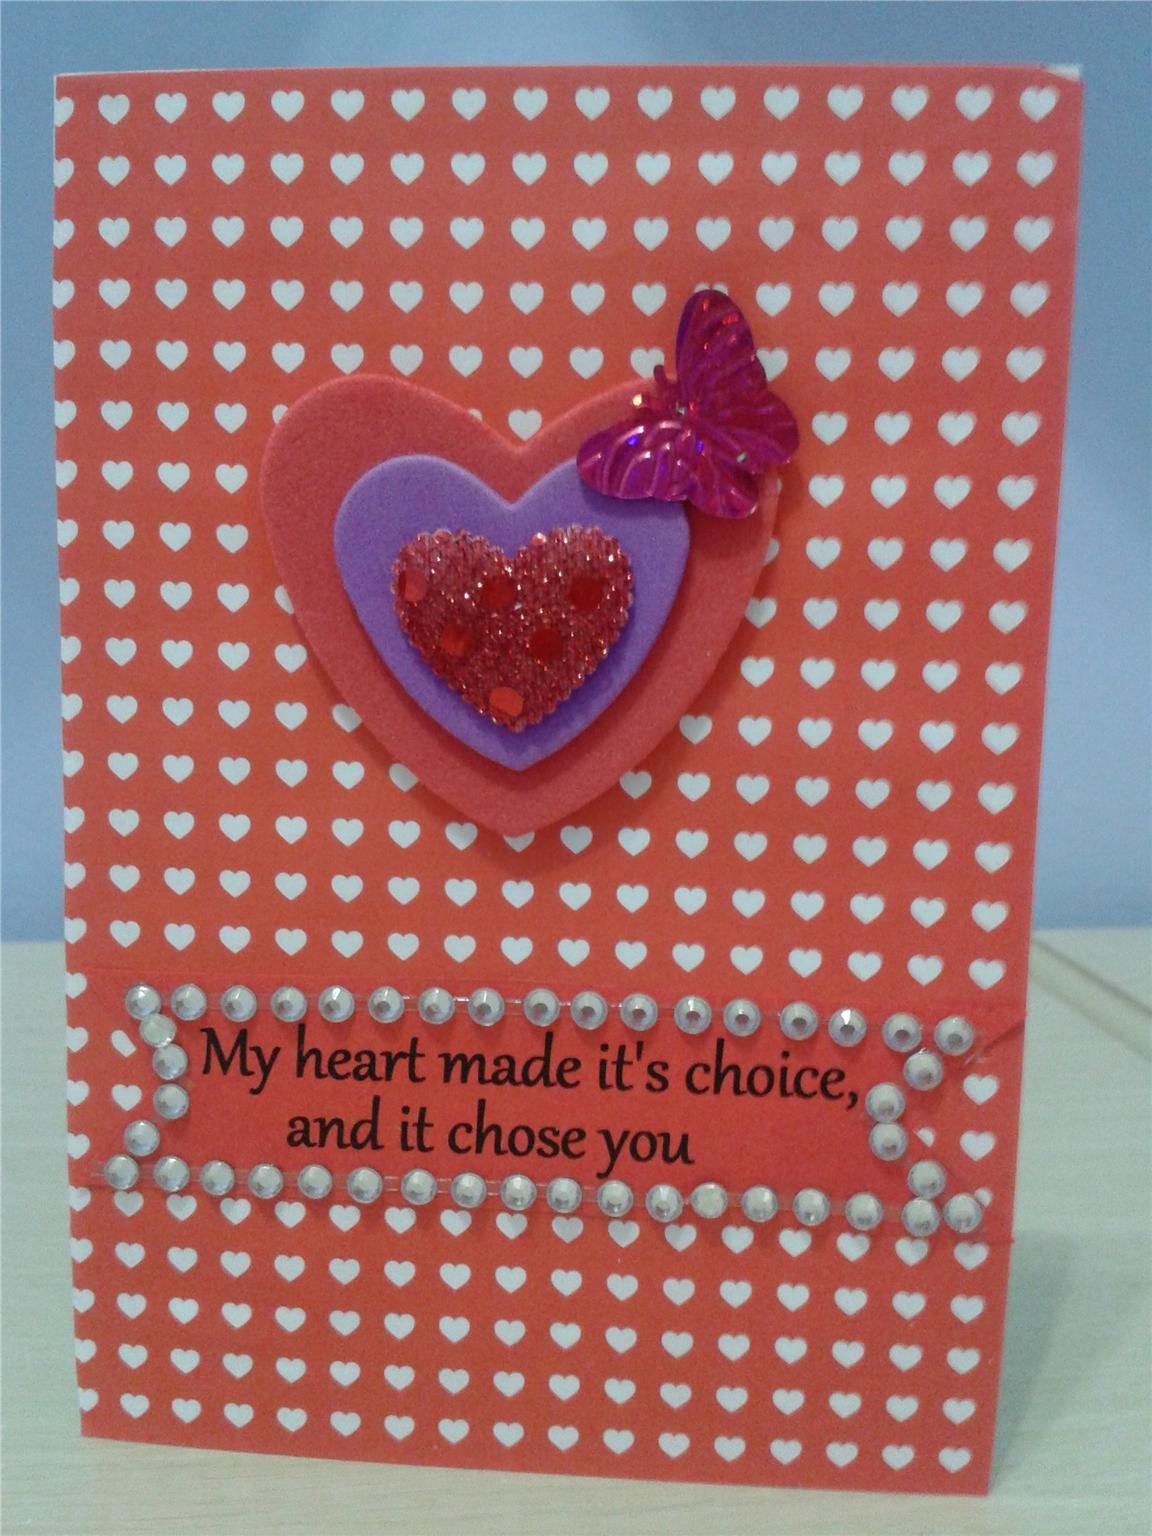 VALENTINE CARD - 3 HEARTS & BUTTERFLY